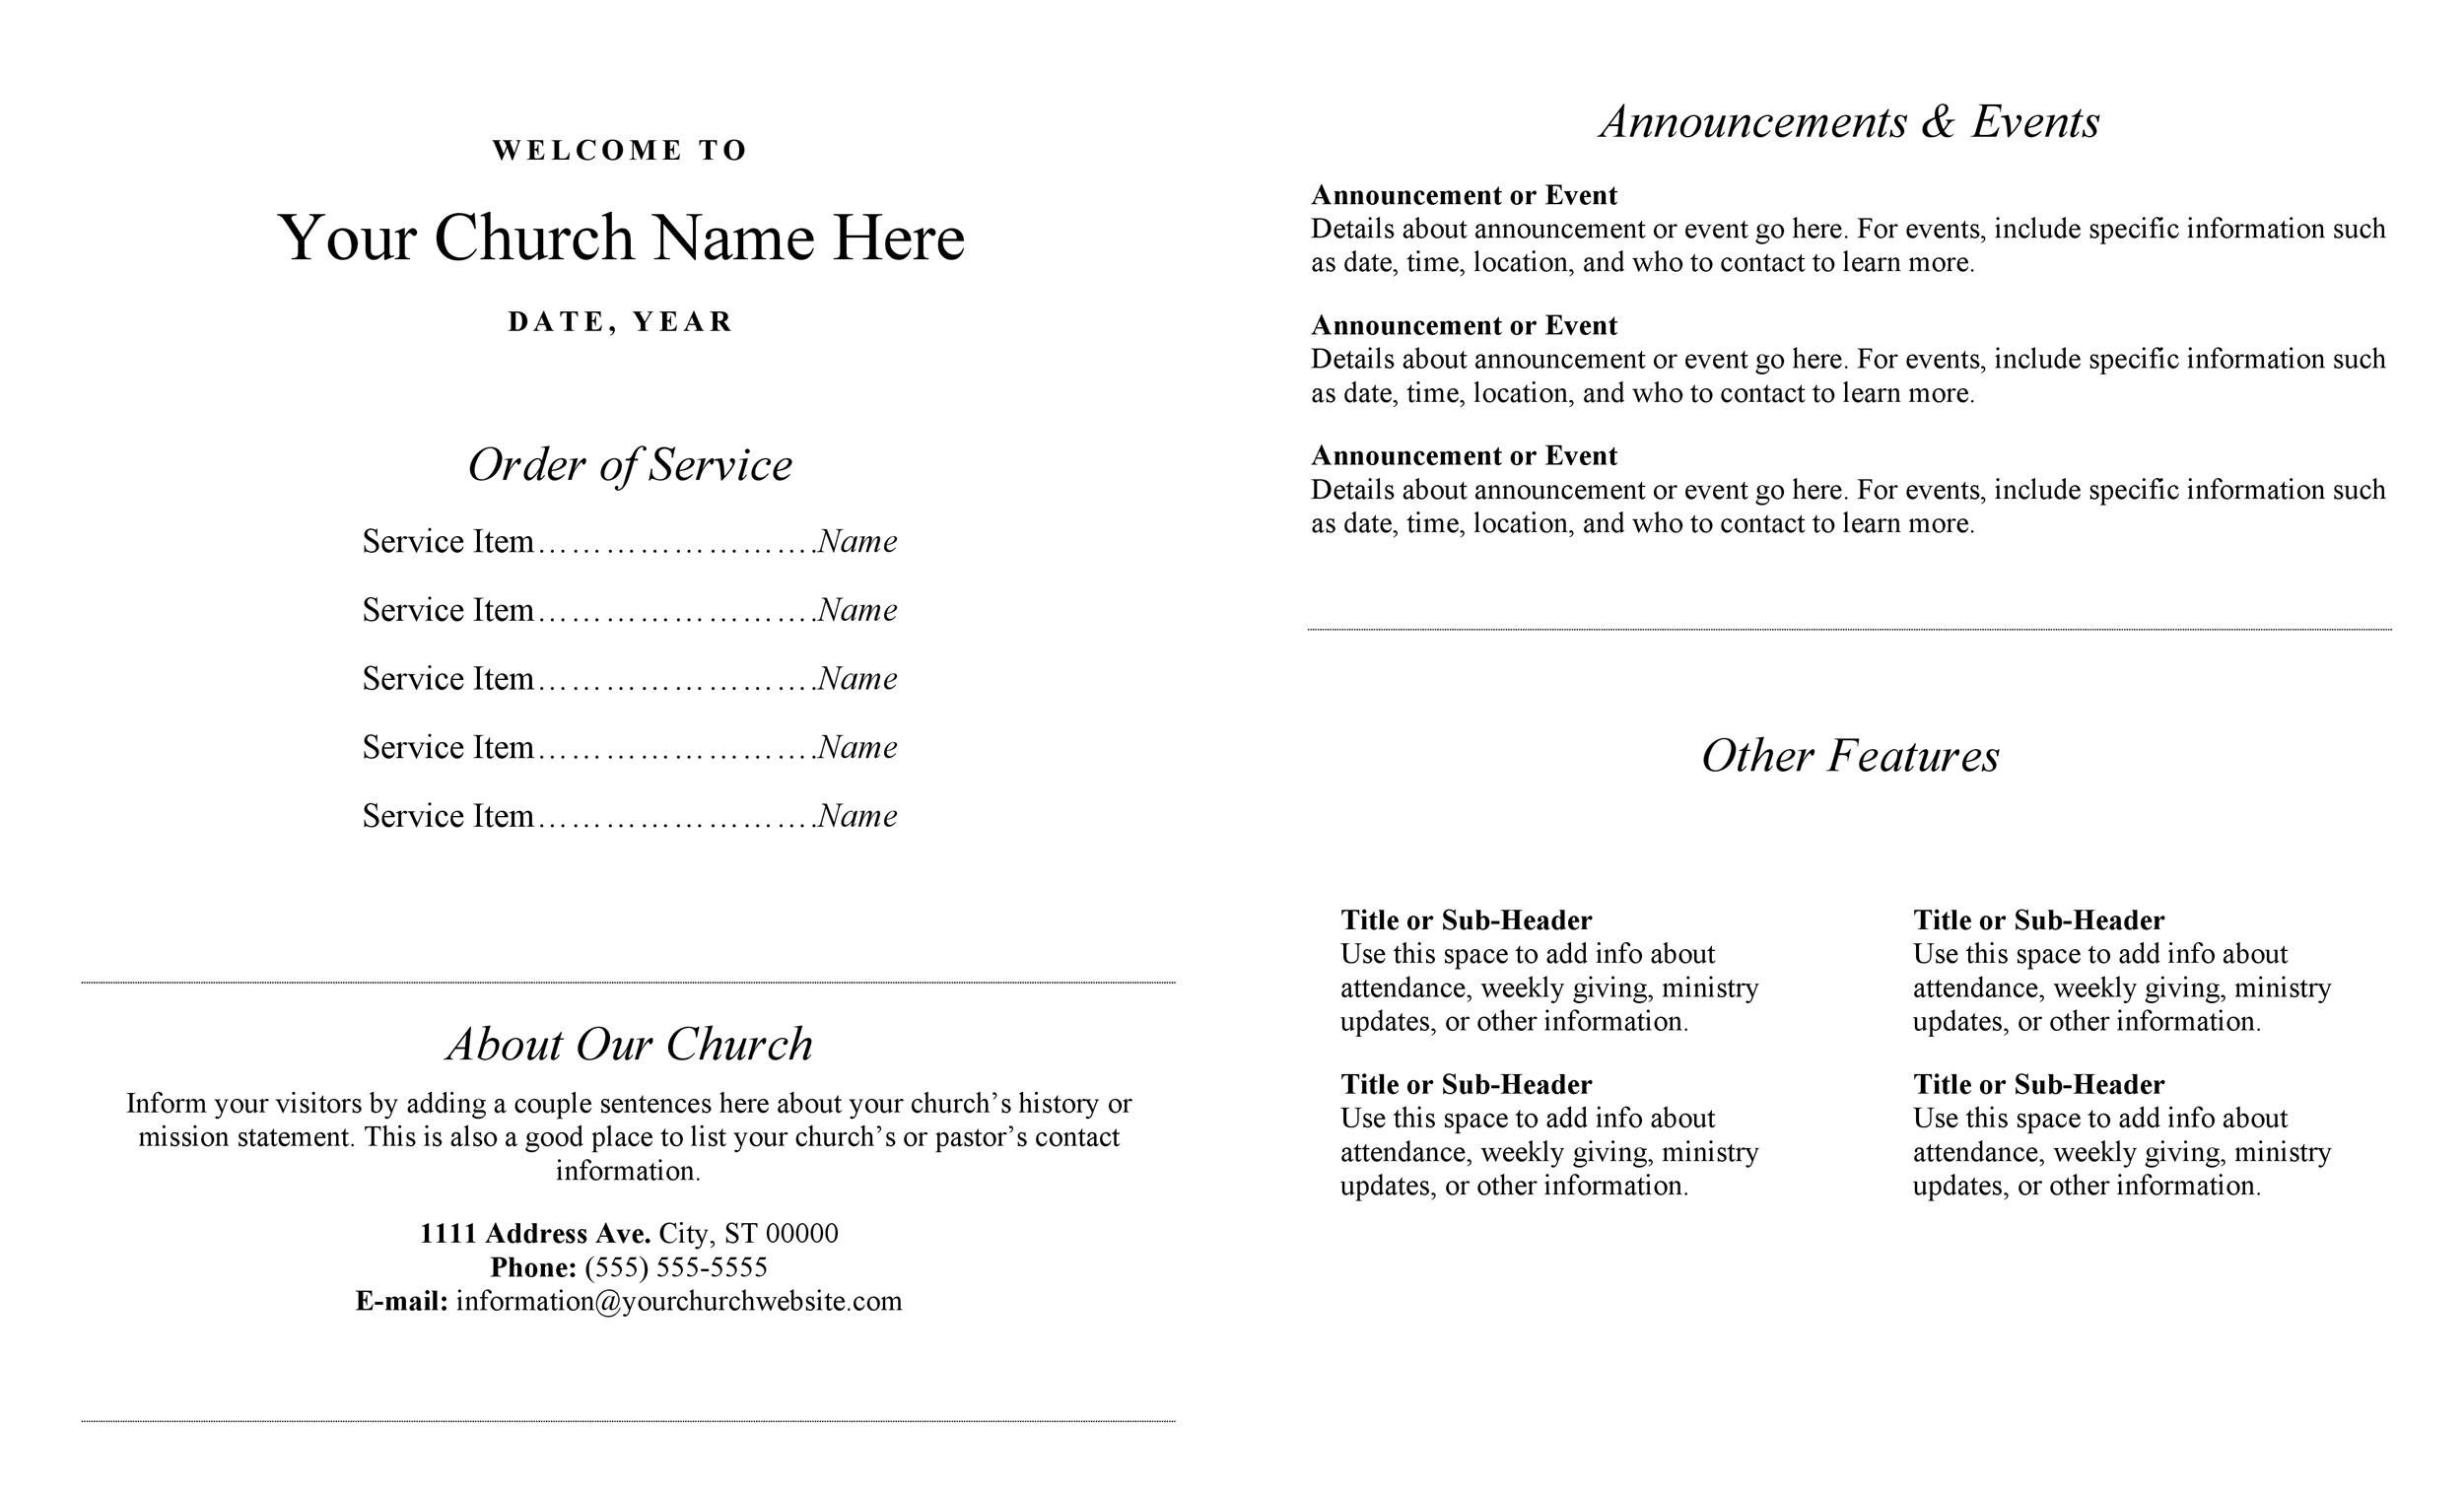 006 Impressive Free Church Program Template Design High Def Full